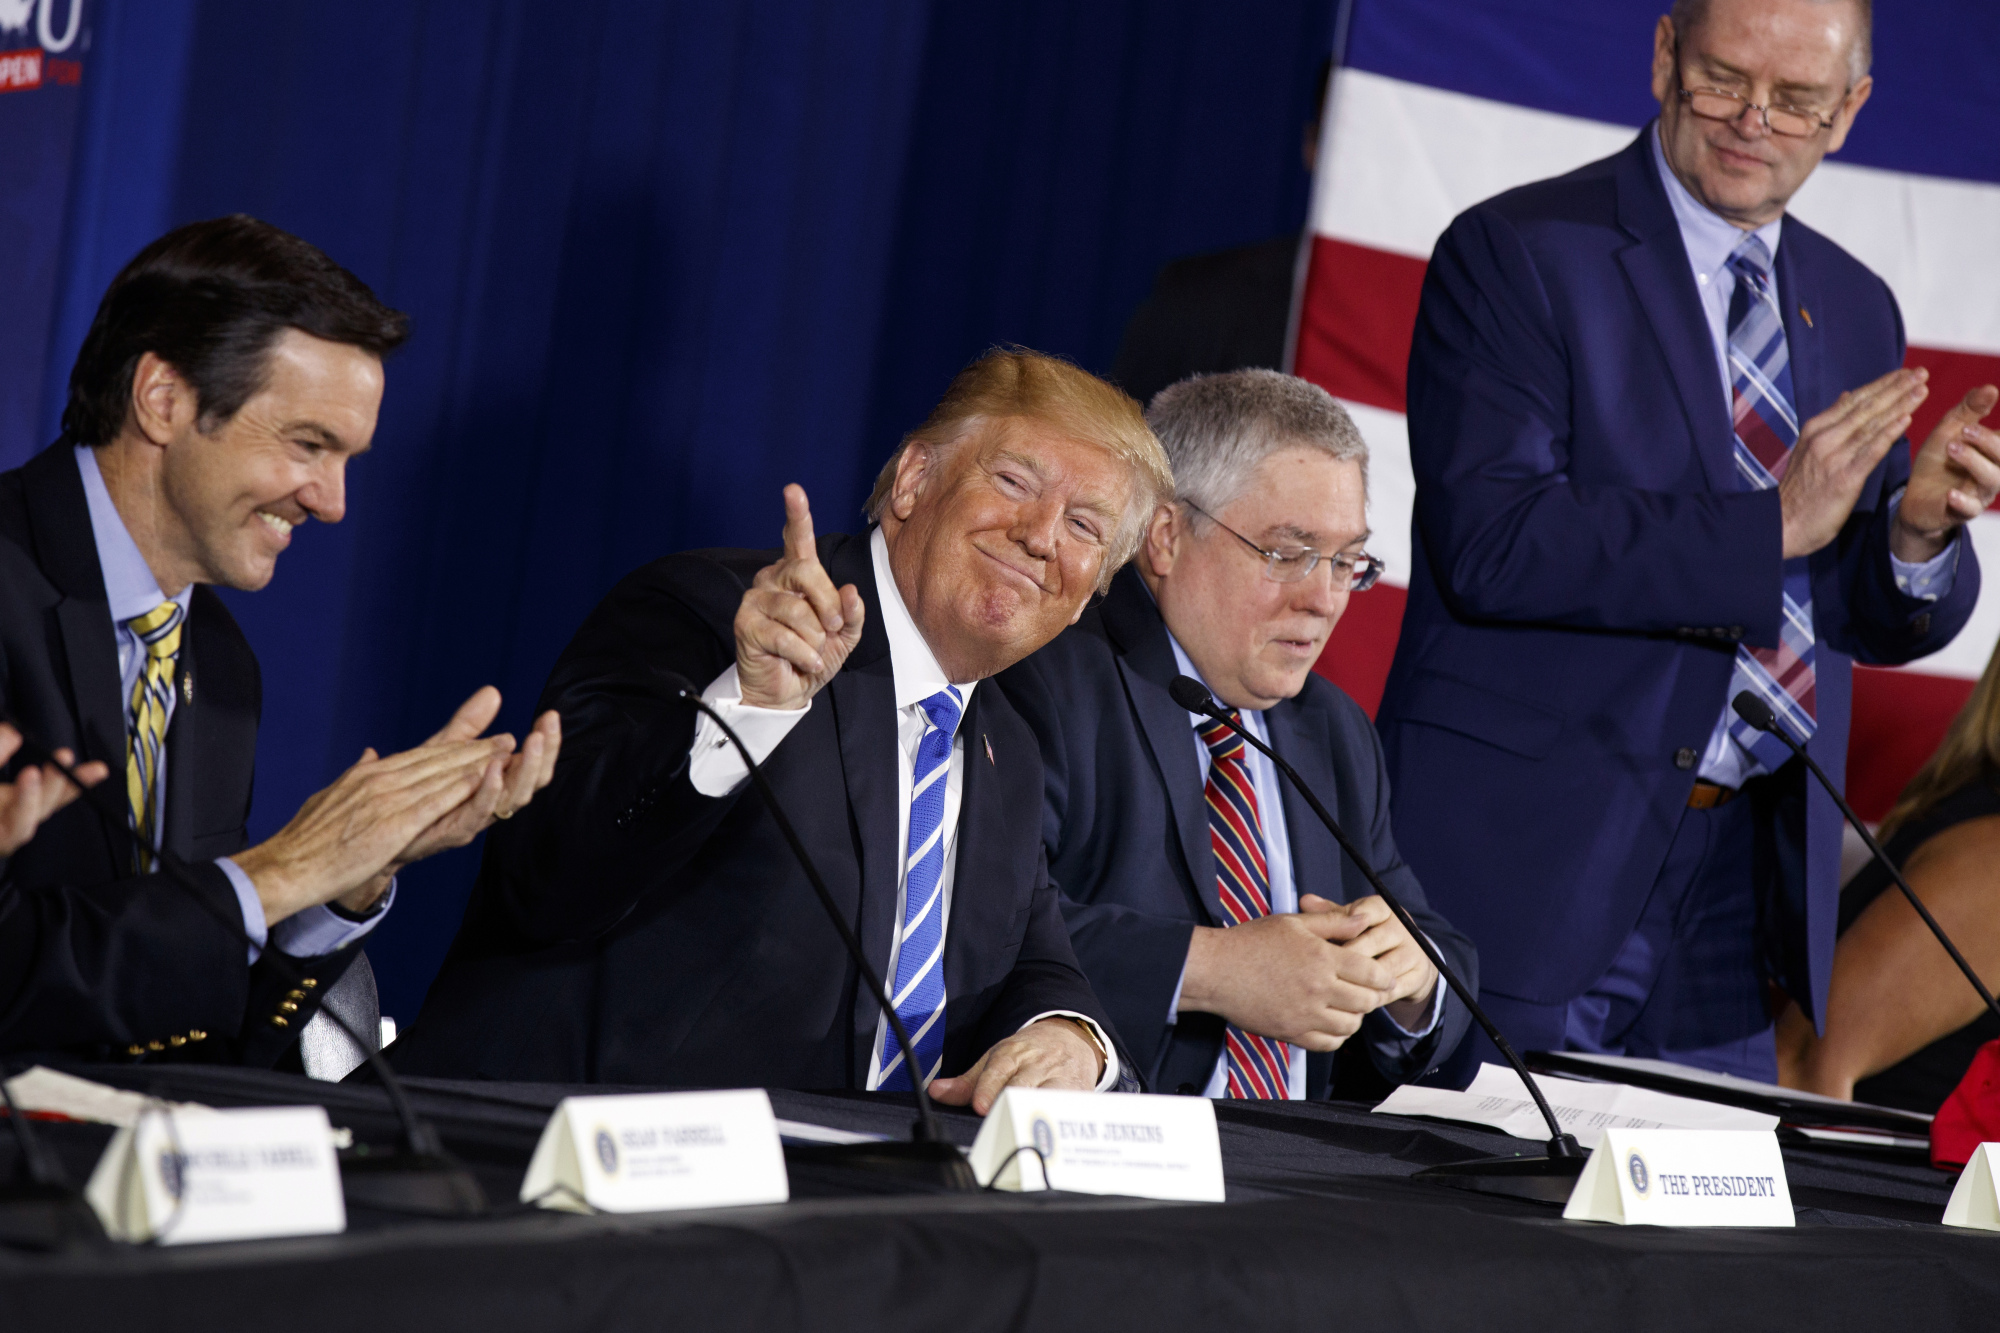 President Donald Trump smiles as people applaud him during a roundtable discussion on tax policy Thursday in White Sulphur Springs, West Virginia with (from left) Rep. Evan Jenkins, R-W.Va., West Virginia Attorney General Patrick Morrisey and CEO of Davis Trust Company Hugh Hitchcock. | AP